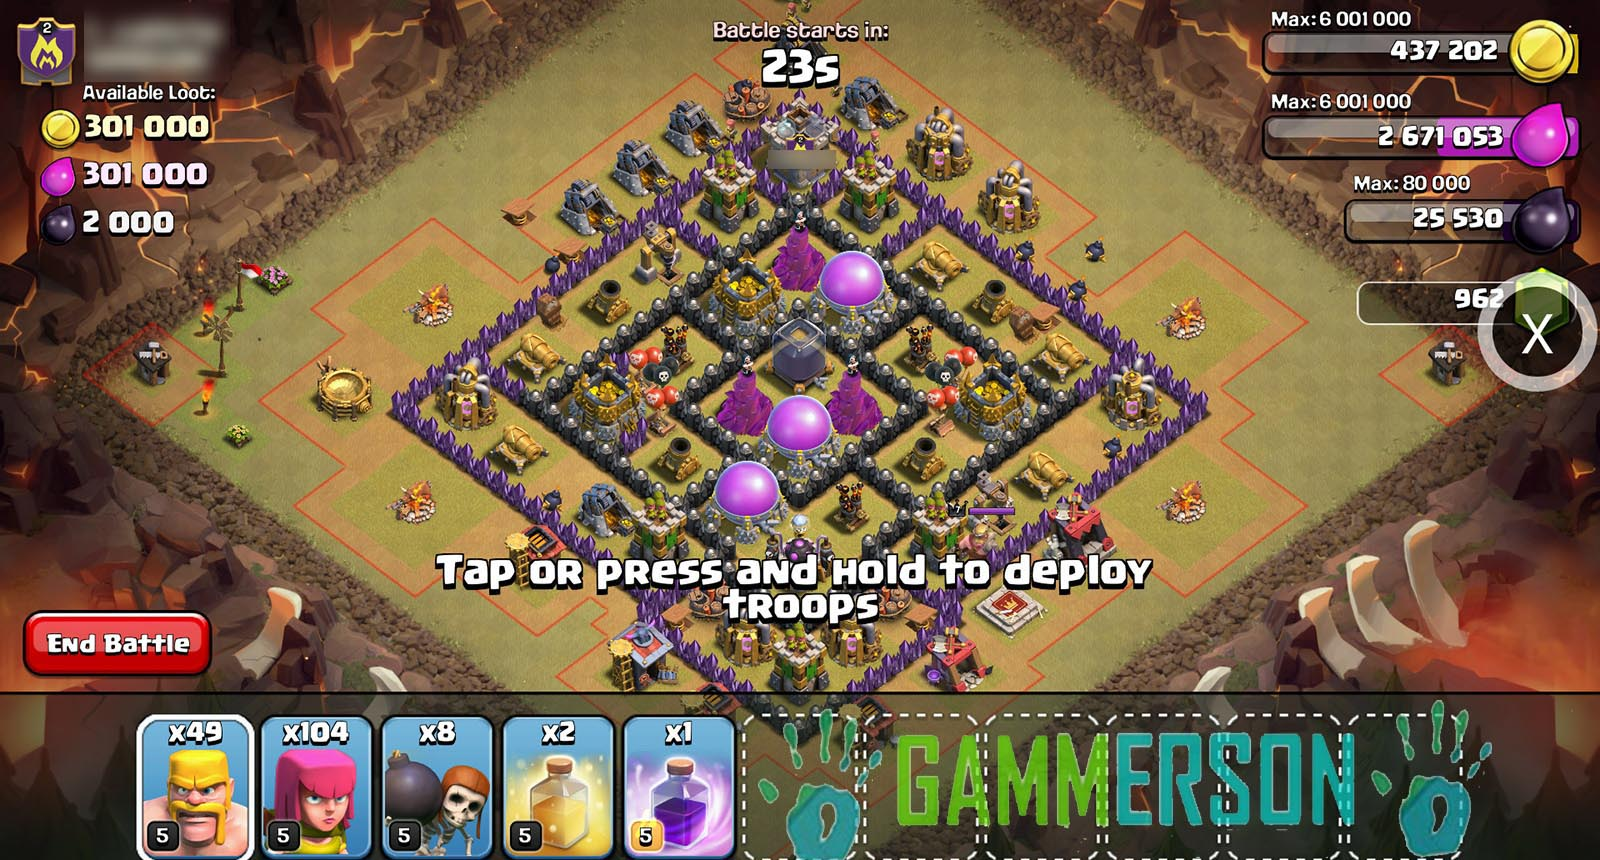 Full Guide Xmodgames Best Mod For Clash Of Clans And Other Popular Games